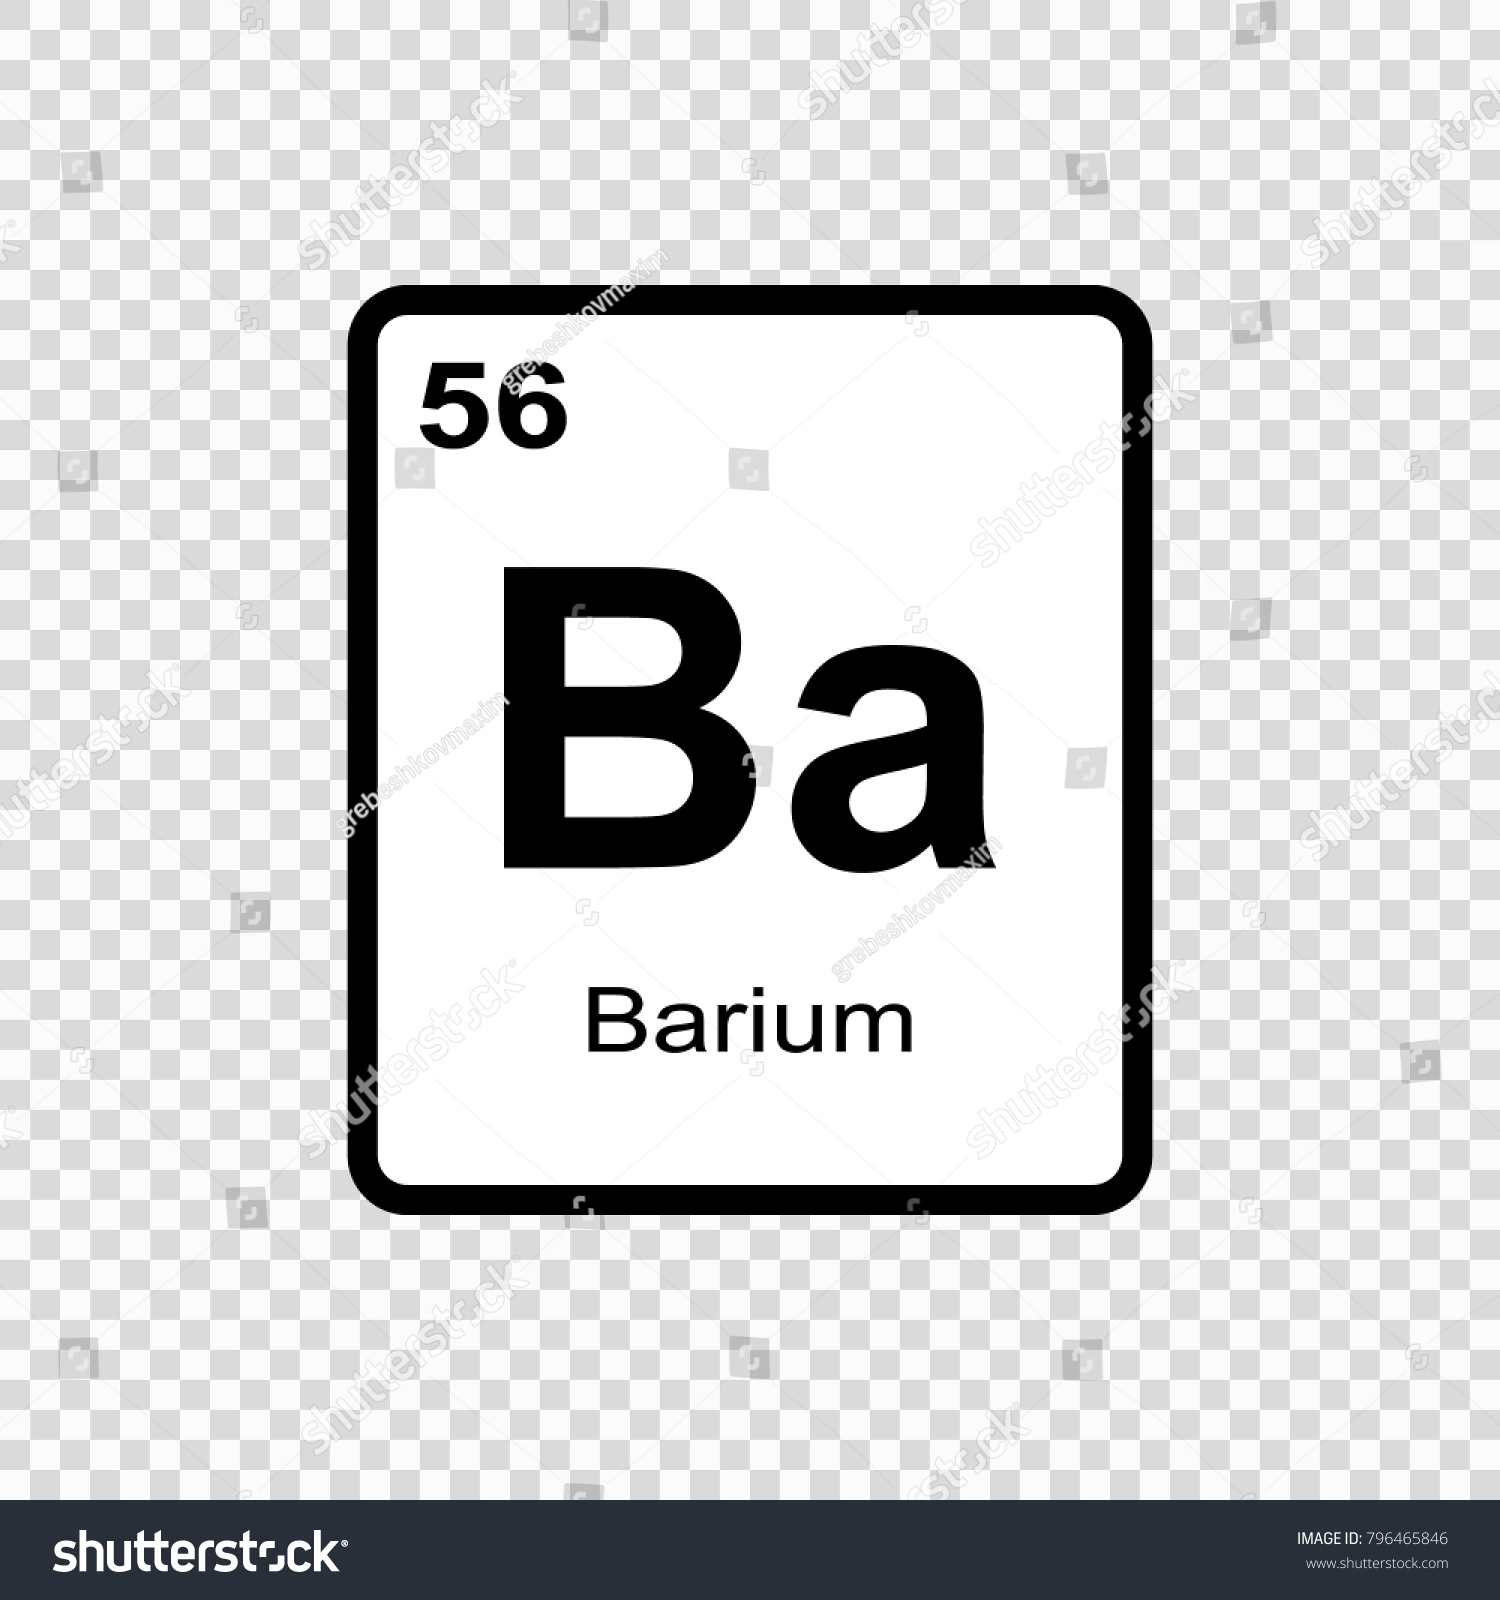 Barium Chemical Element Sign Atomic Number Stock Vector Royalty